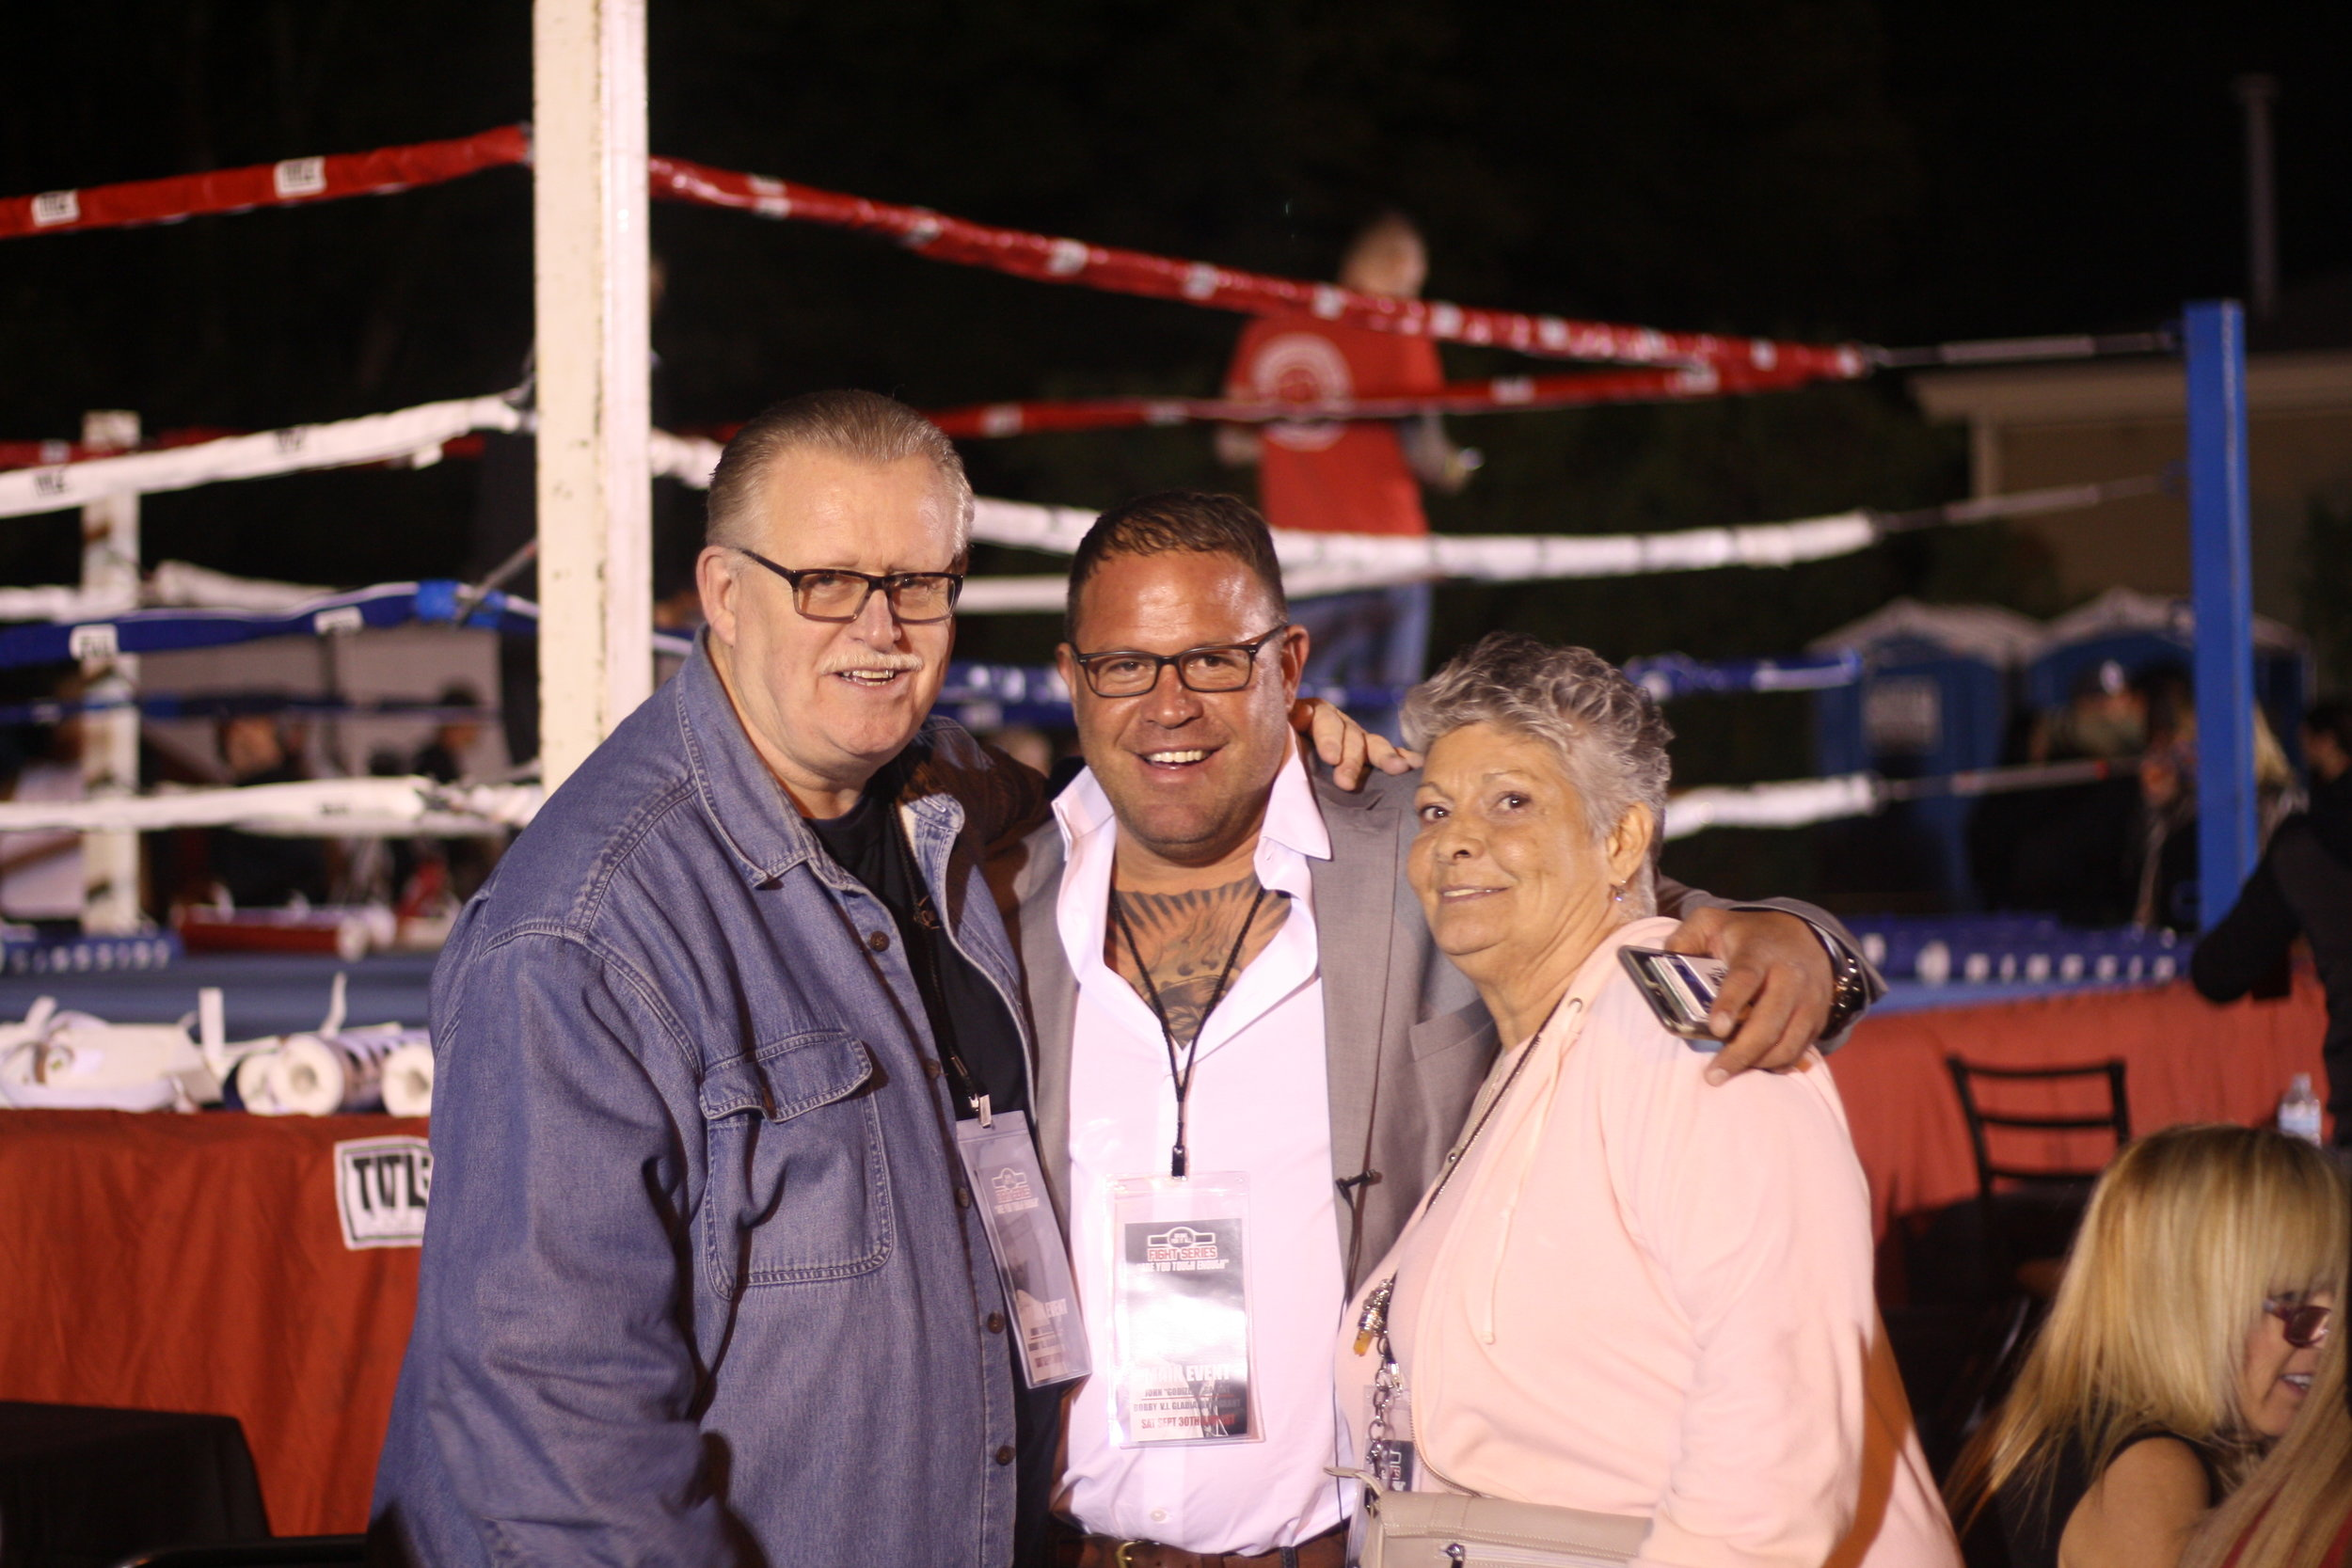 The latest installment of Brawl For It All drew hundreds of spectators, including Jarrod's mother and father.  Photo by Rob Szypko.